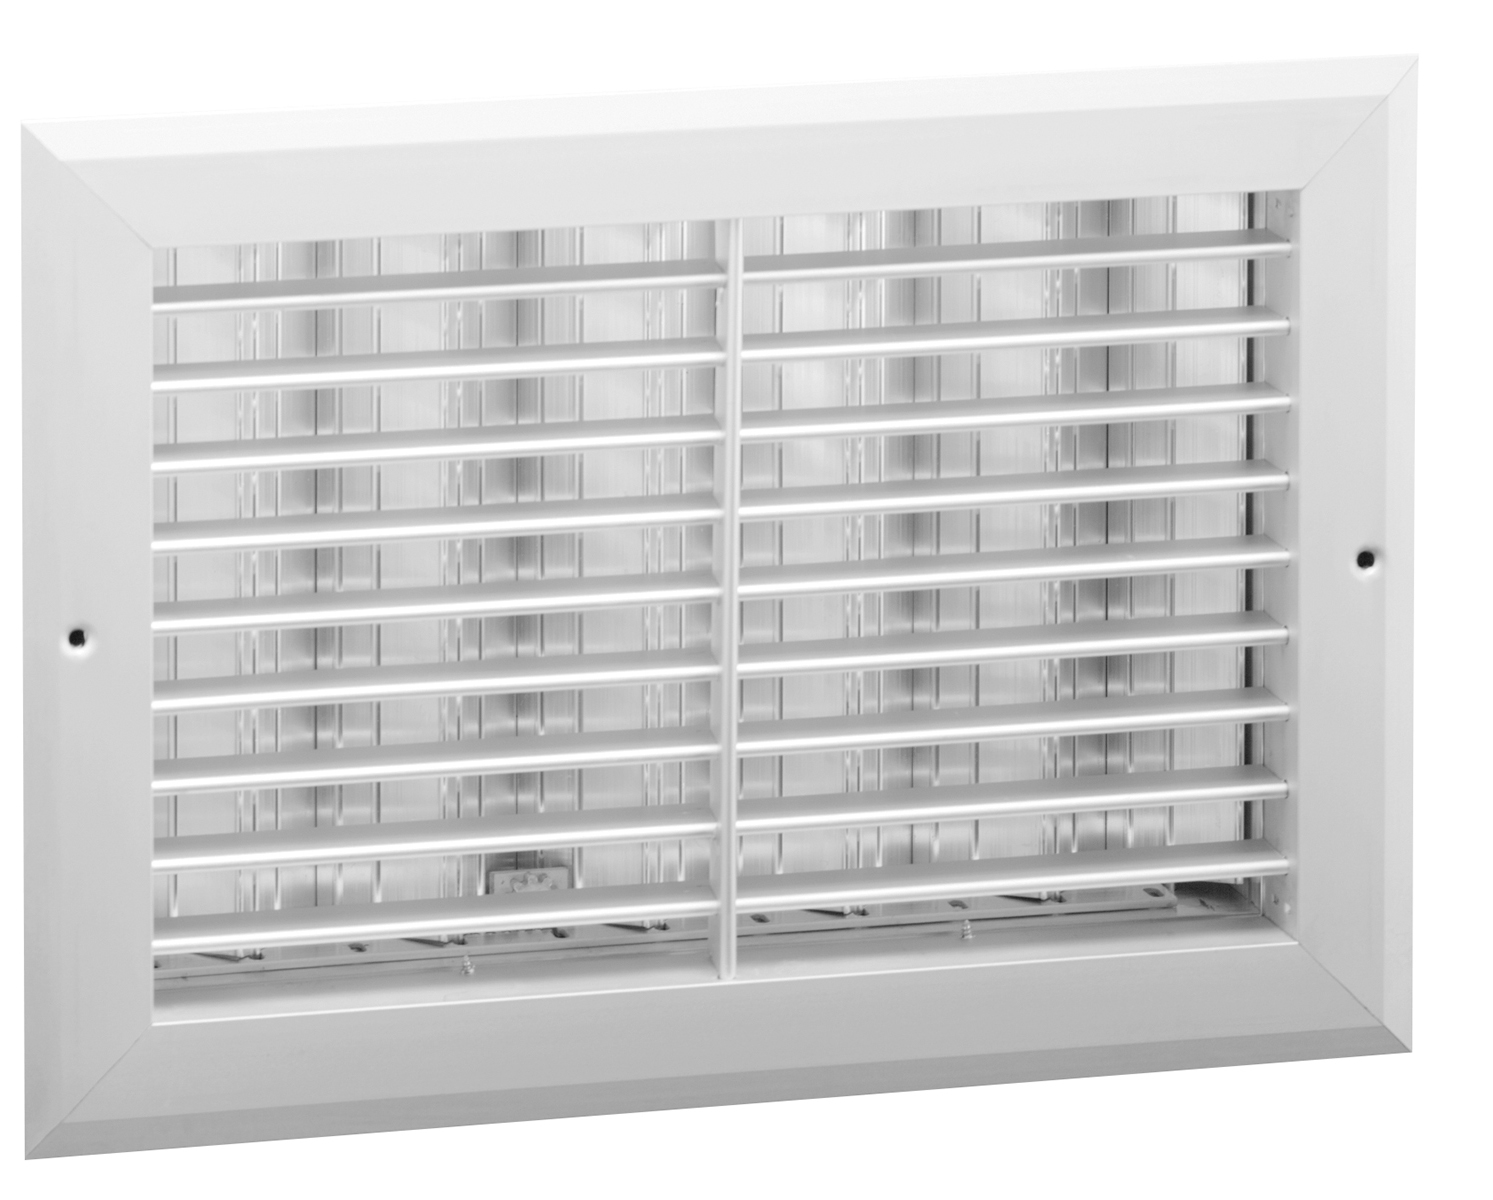 #404040 RHD90 Aluminum Return Air Grille 90 Degree Fixed Blade  Highly Rated 2319 Drop Ceiling Return Air Grille wallpapers with 1493x1200 px on helpvideos.info - Air Conditioners, Air Coolers and more